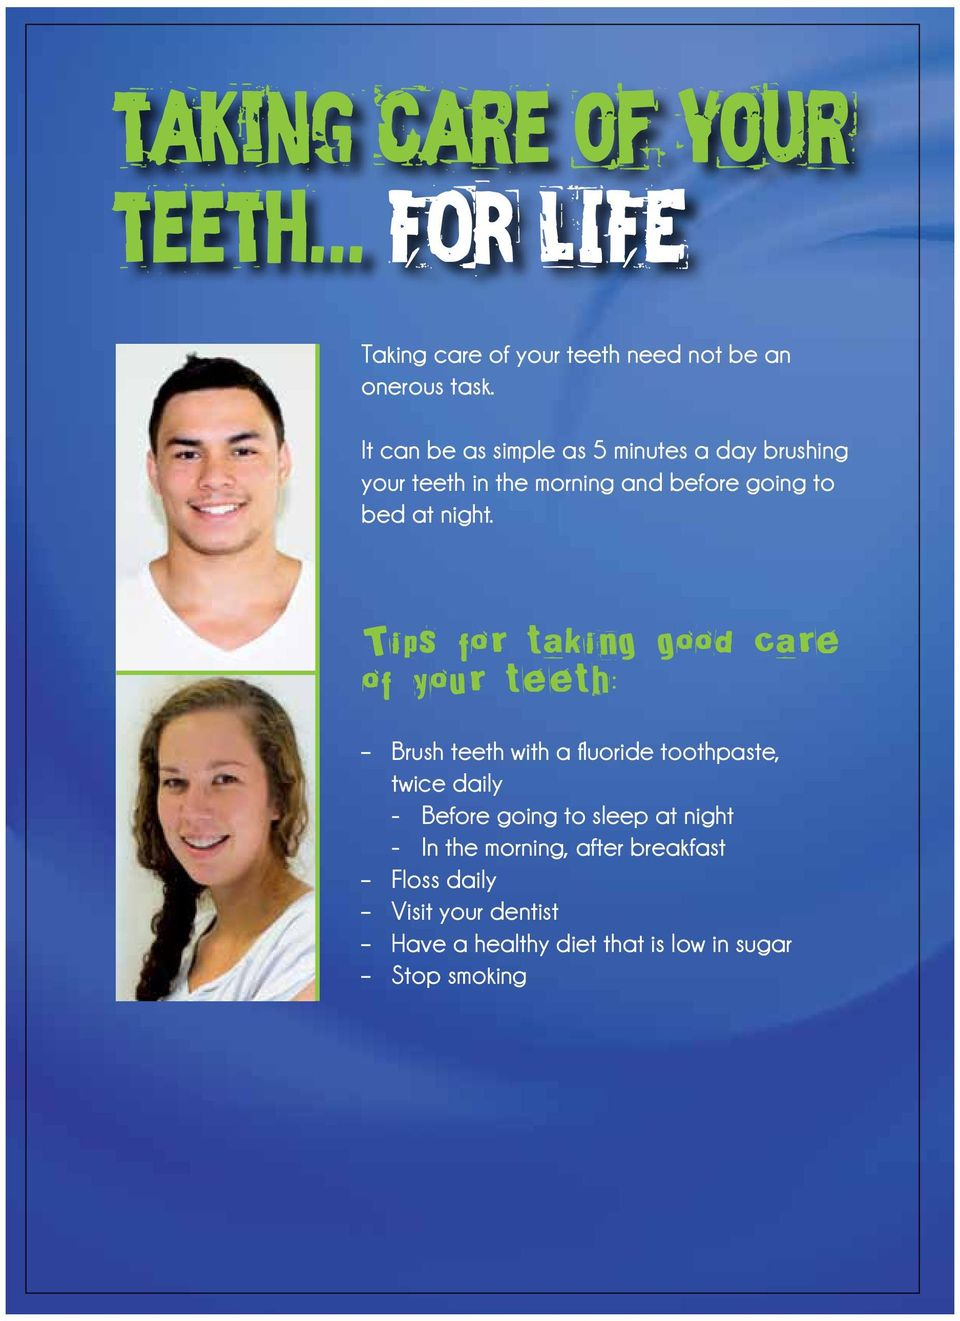 Tips for taking good care of your teeth: Brush teeth with a fluoride toothpaste, twice daily - Before going to